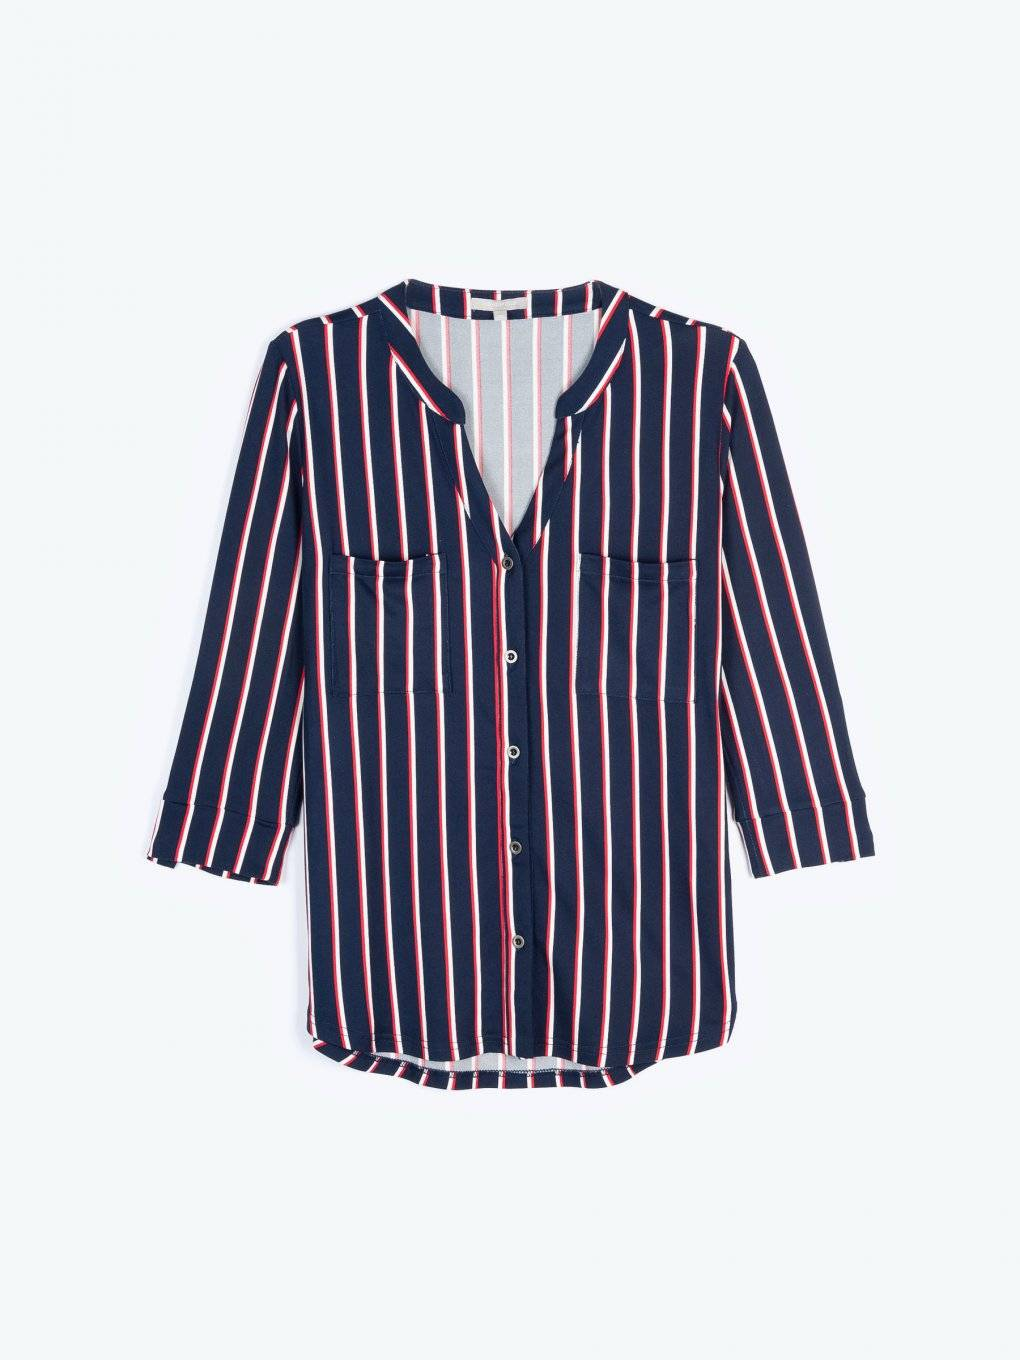 Knit striped blouse